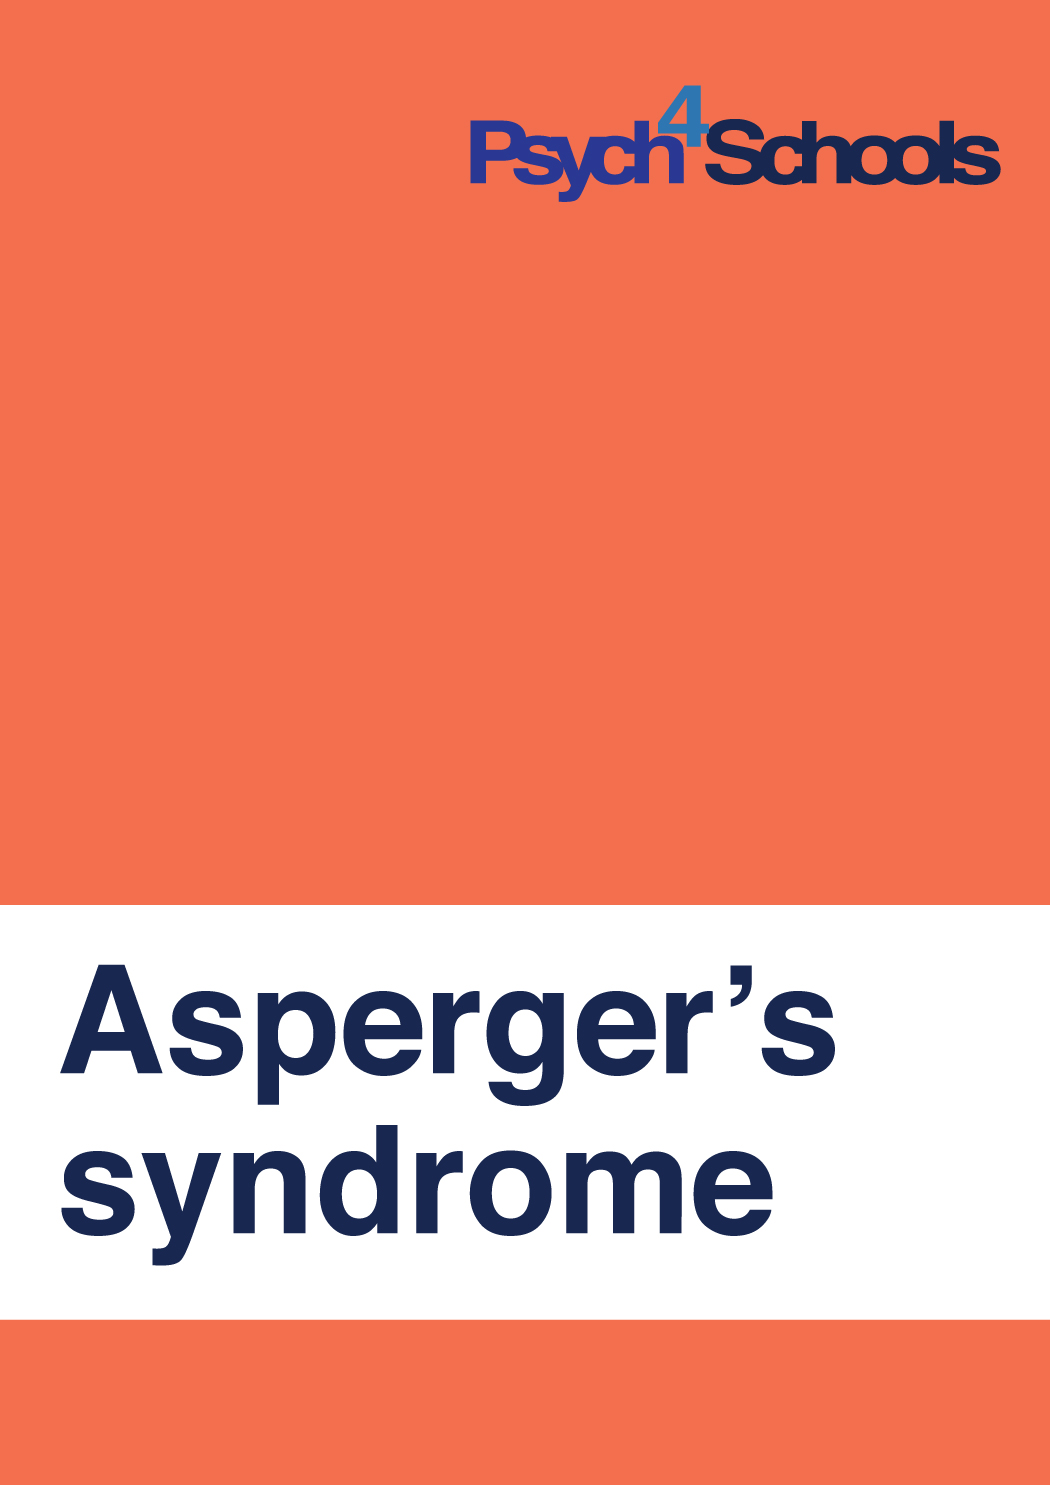 Asperger's Syndrome - Free Resources - Psych4Schools